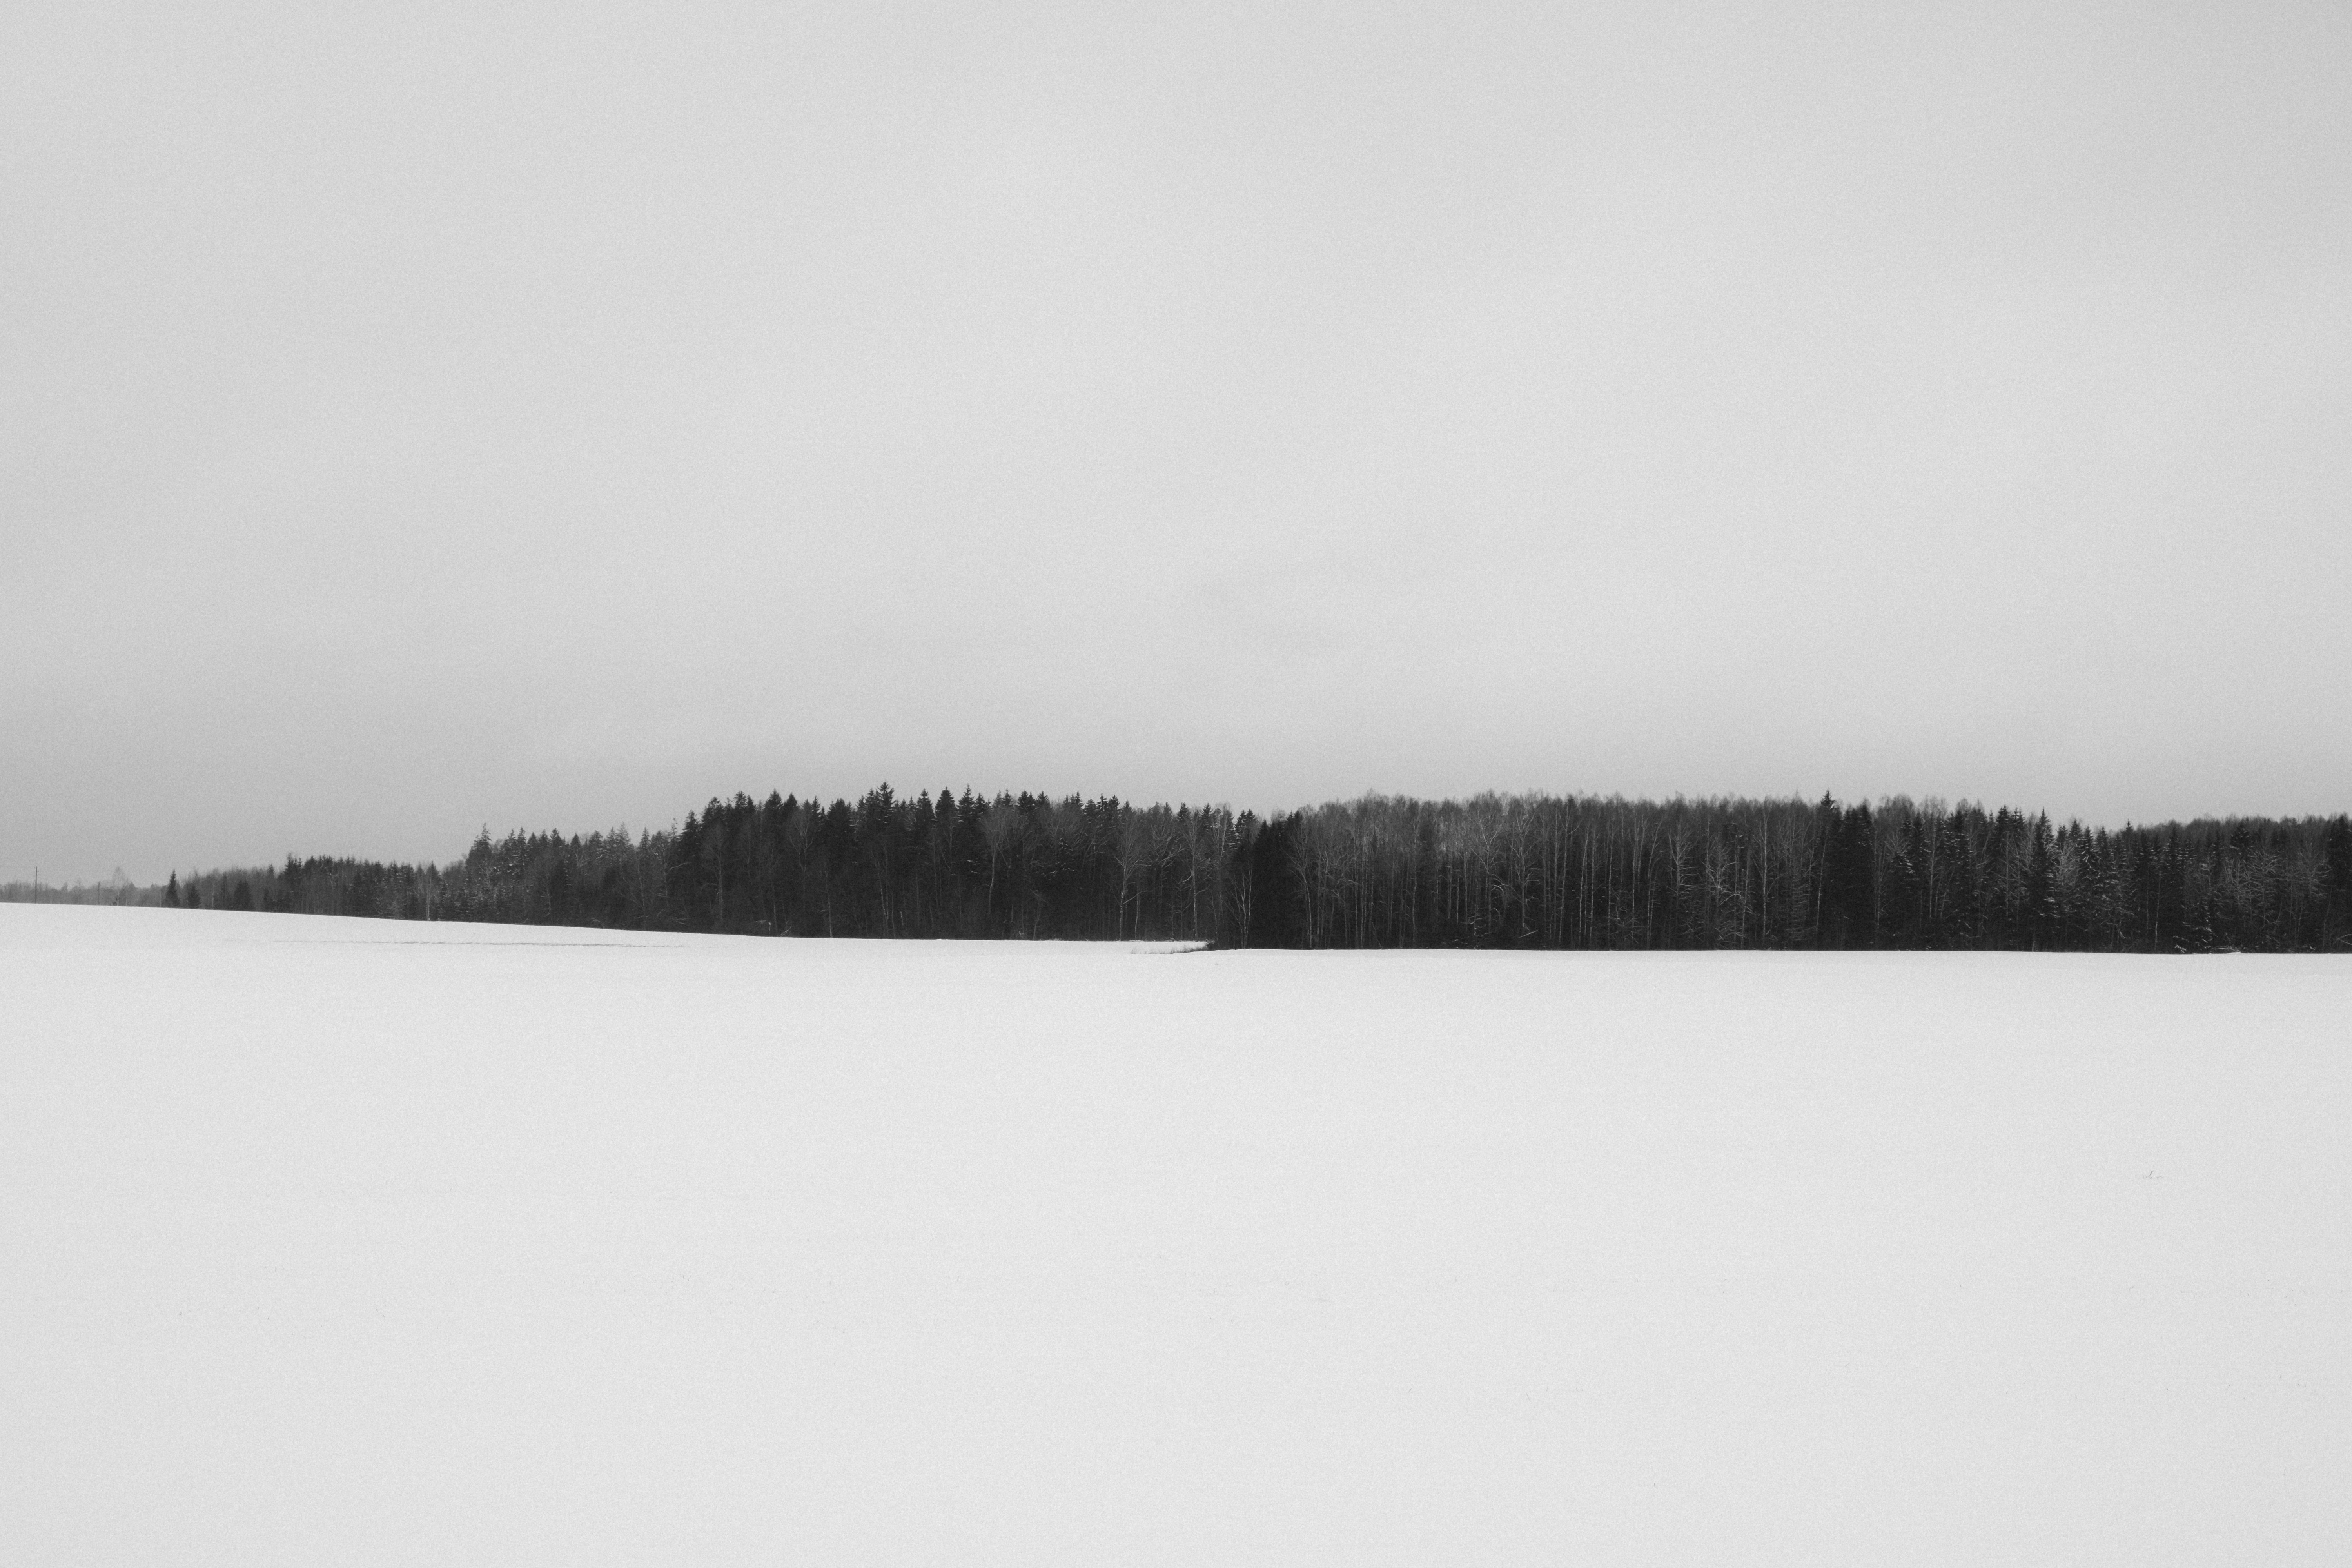 forest grayscale photography